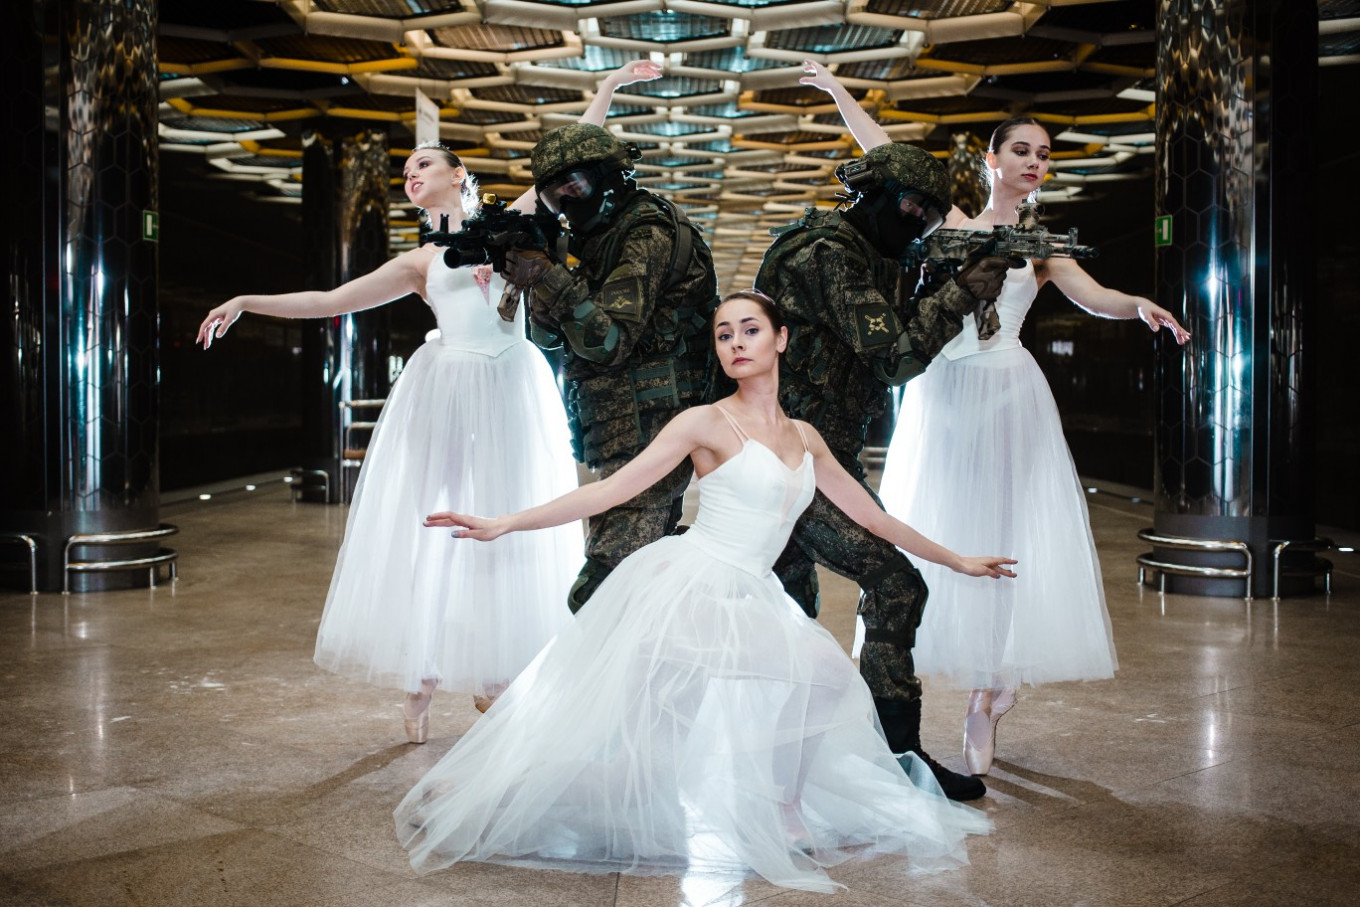 Russian Soldiers Join Ballerinas for Puzzling Women's Day ...